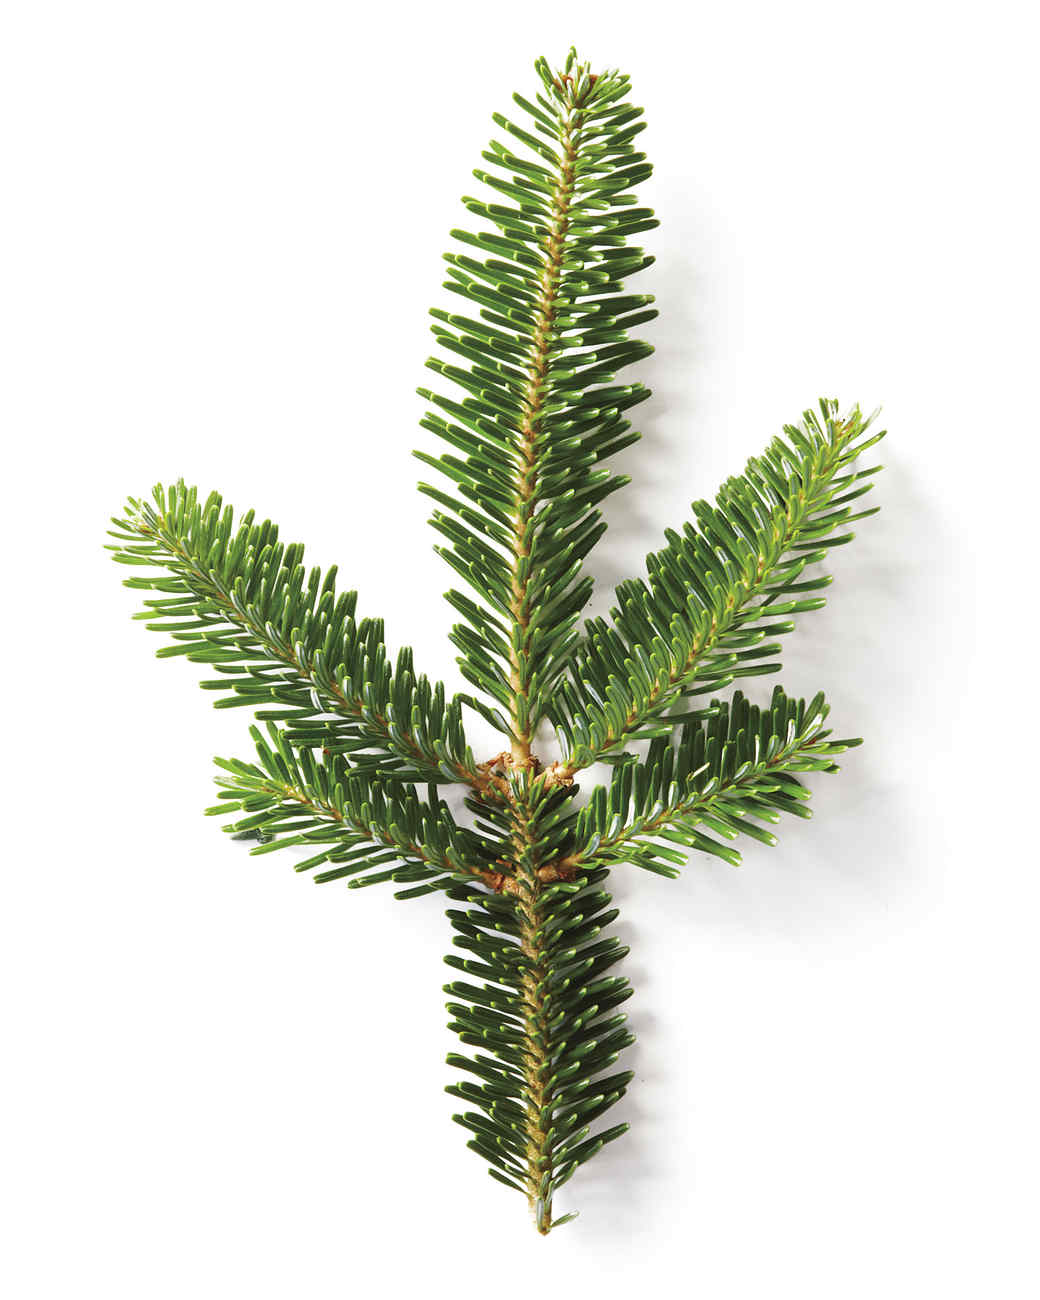 Fraser Fir Christmas Trees: A Christmas Tree Glossary